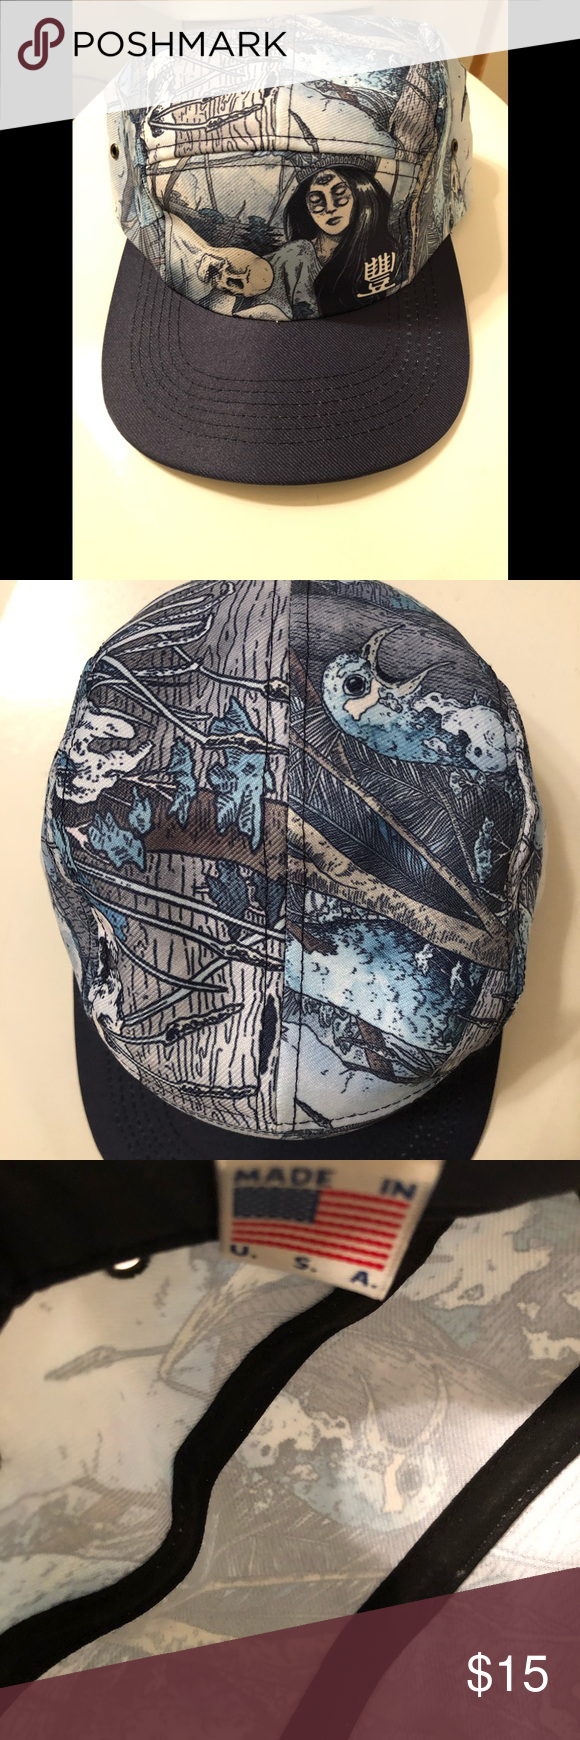 Jedi mind tricks thief and fallen hip hop 5 panel (With